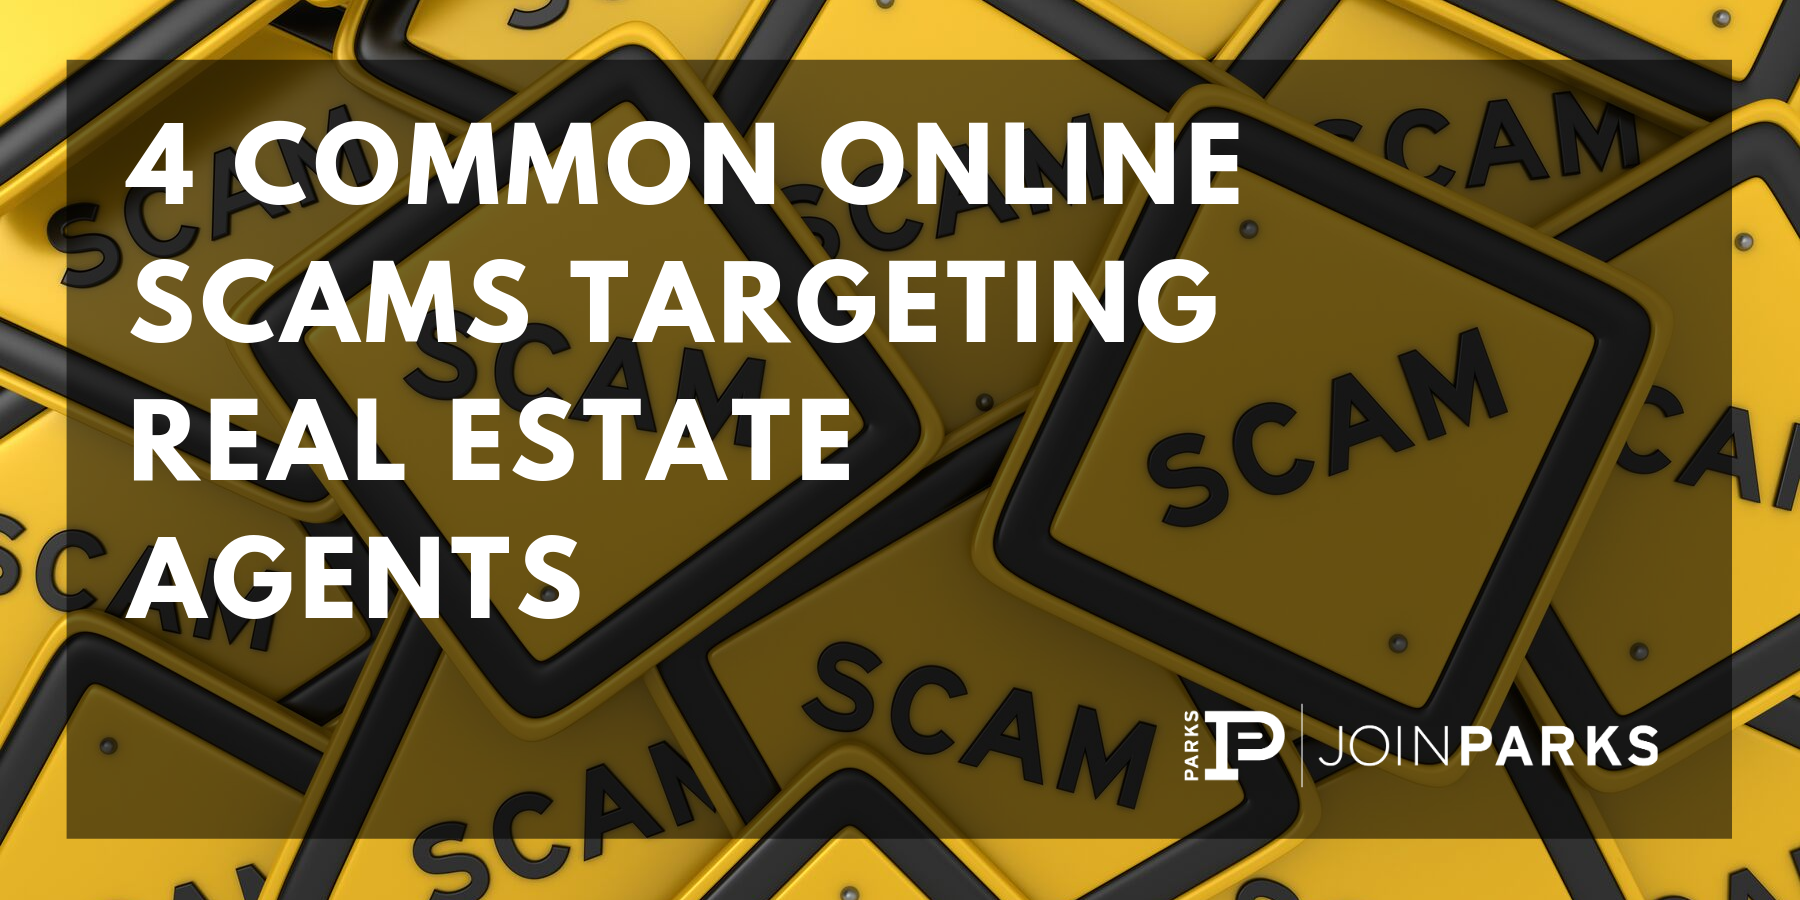 4 Common Online Scams Targeting Real Estate Agents.png